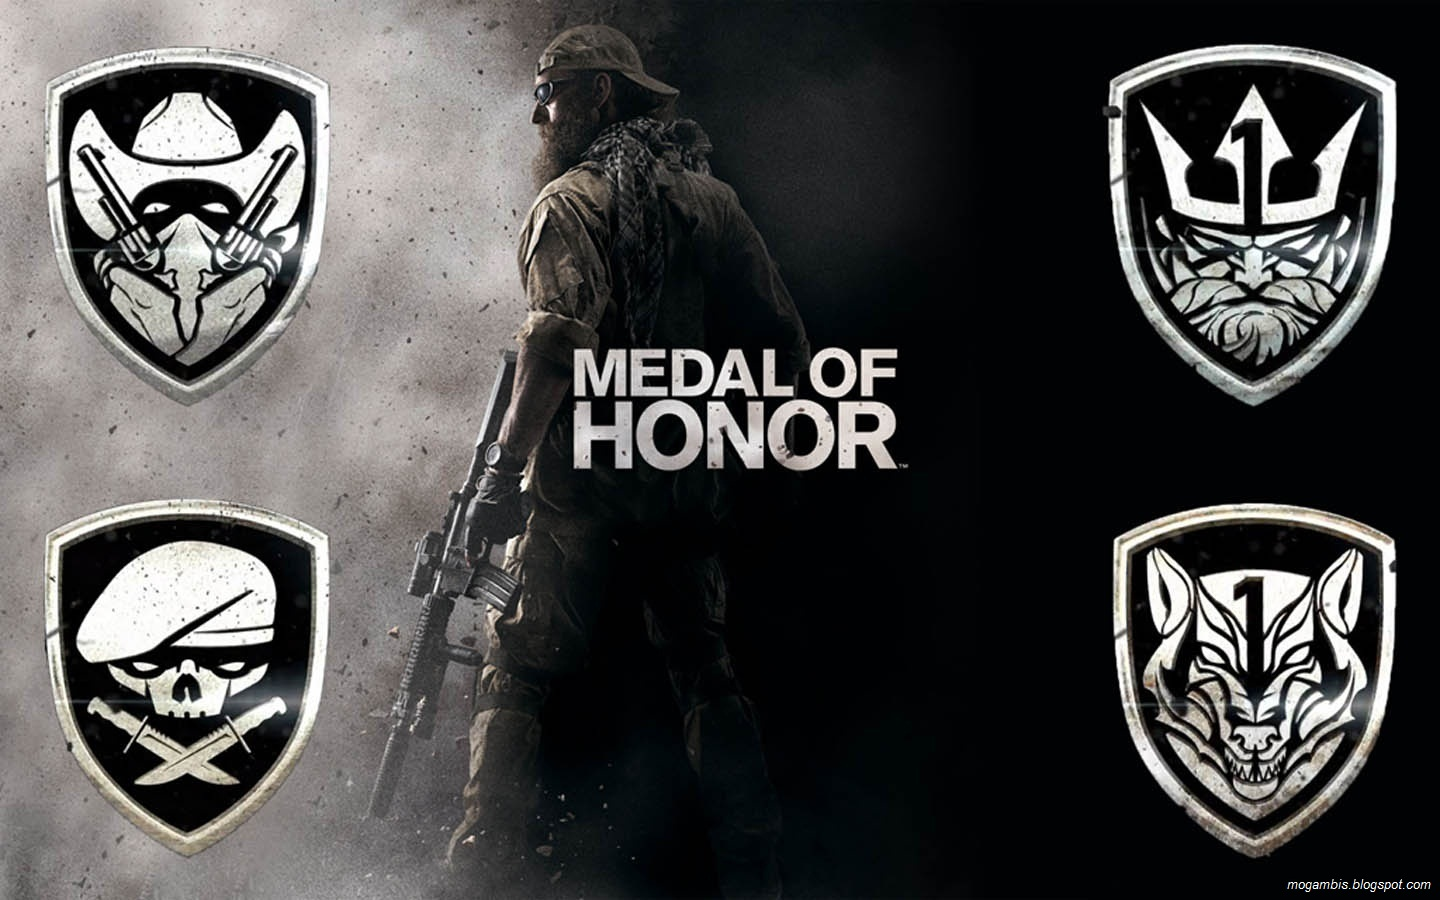 medal_of_honor_tier_1-1440x900.jpg